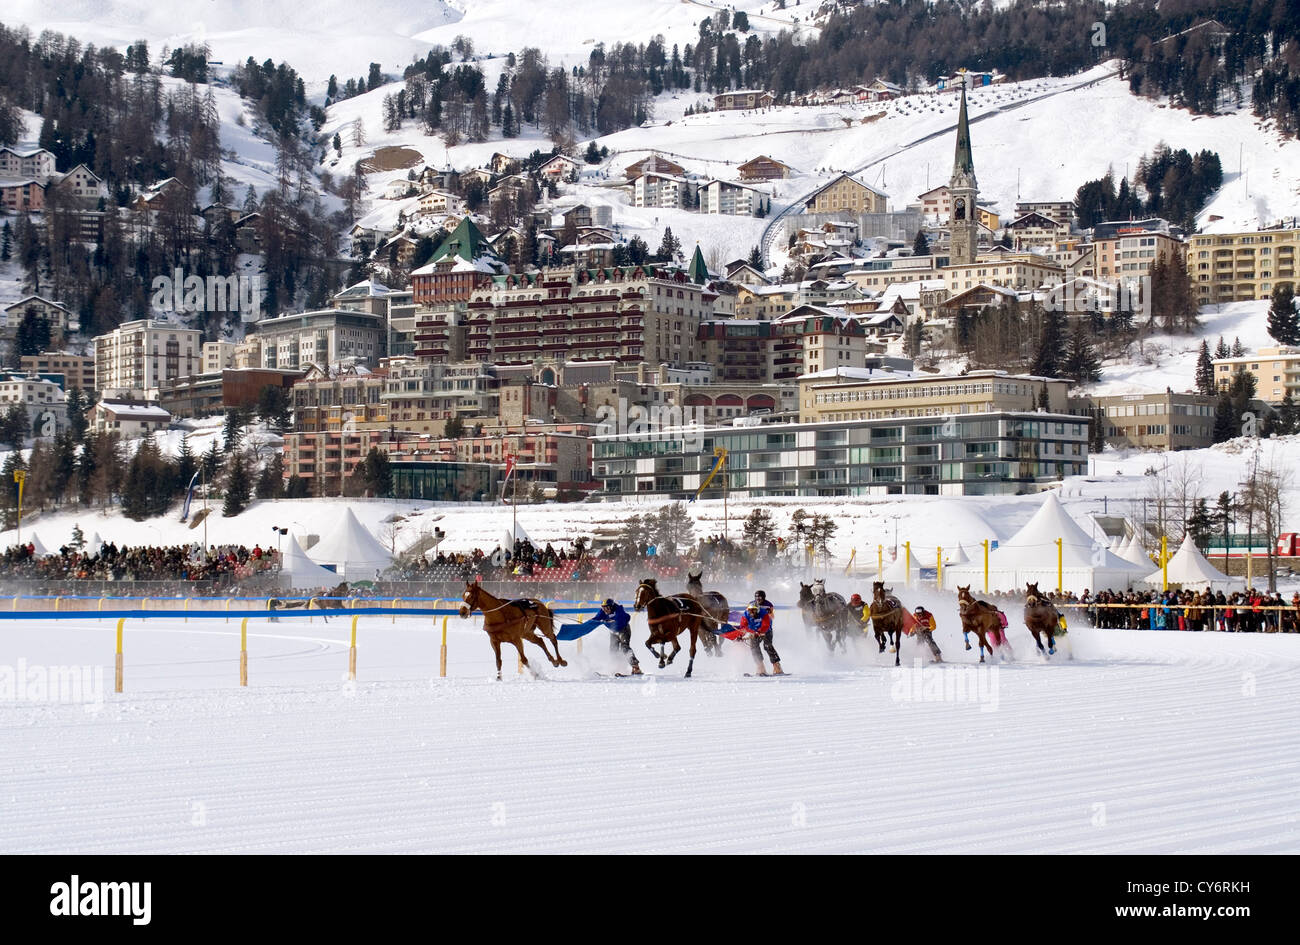 Skijöring race during White Turf in St.Moritz, Switzerland | Skijöring Rennen waehrend White Turf in St.Moritz, - Stock Image